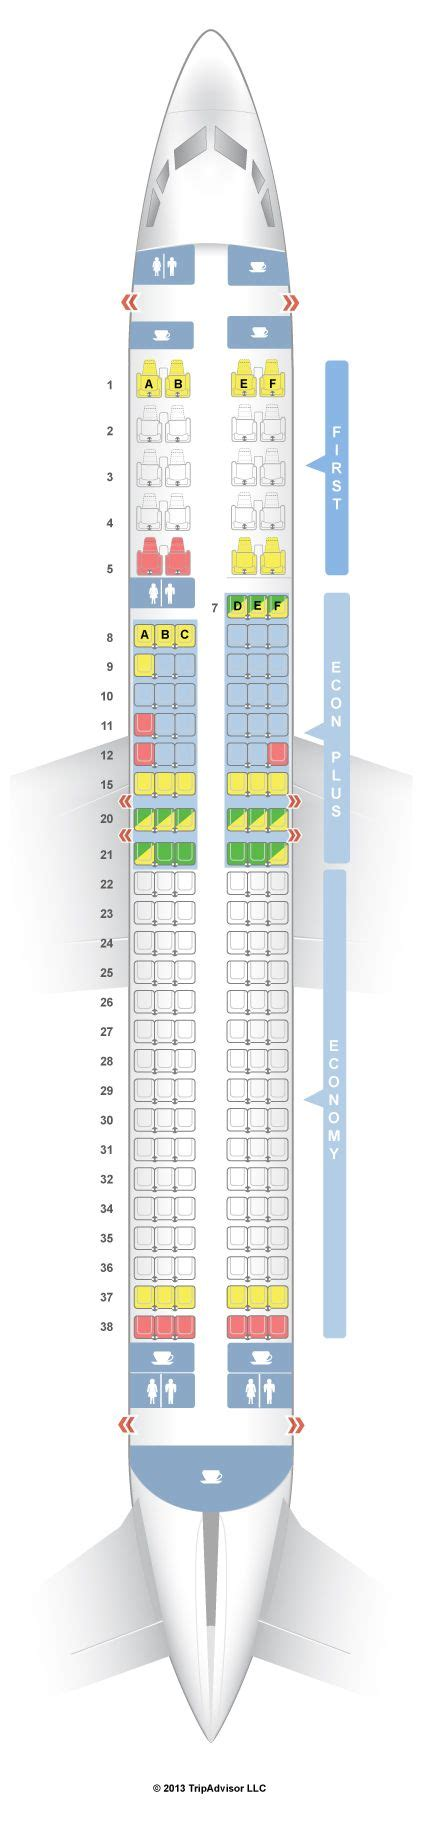 b737 900 config 1 korean air seat maps reviews 1000 ideas about 737 800 seating on pinterest boeing